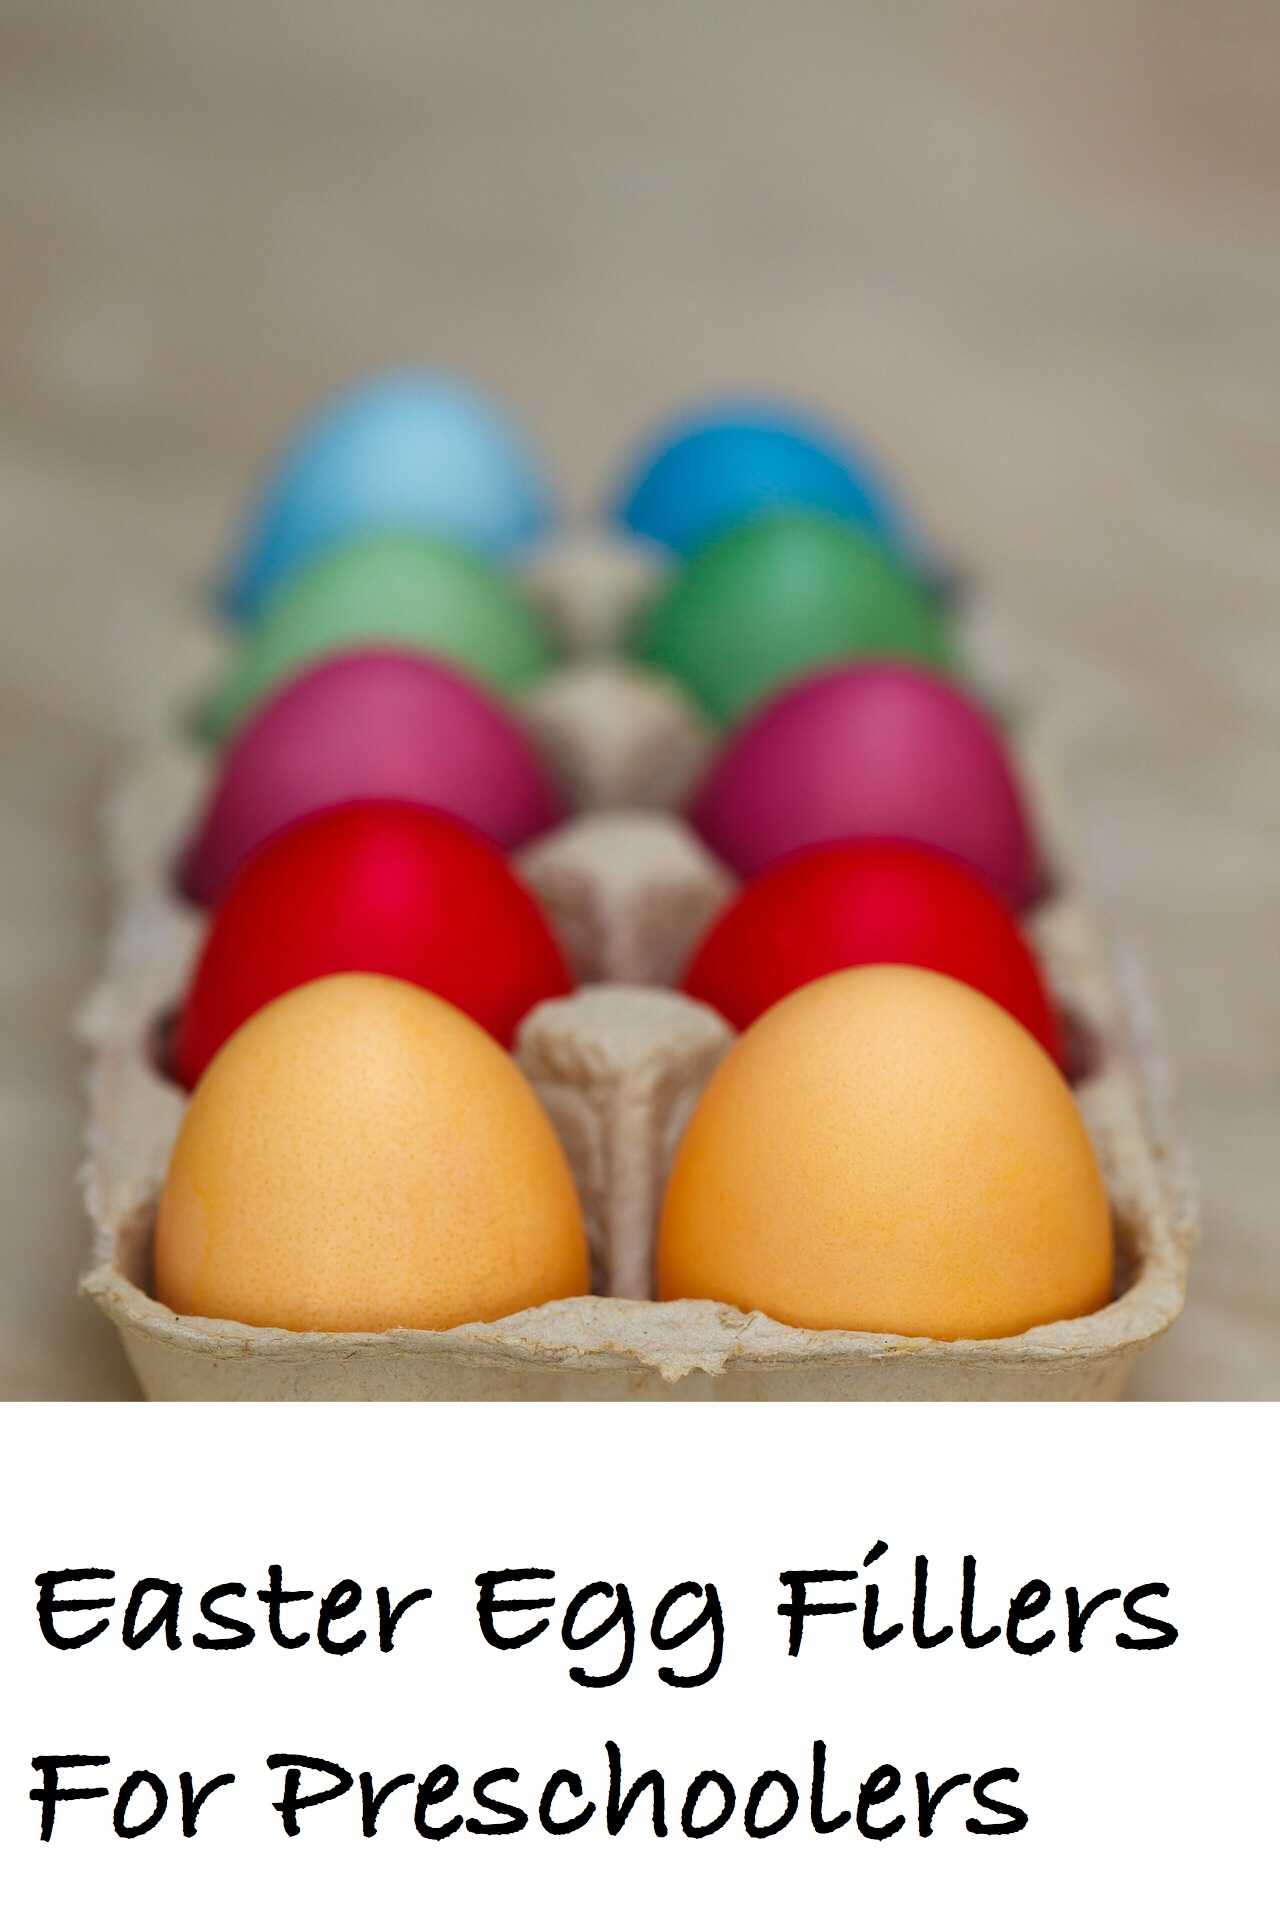 Easter Egg Fillers for Preschoolers pin